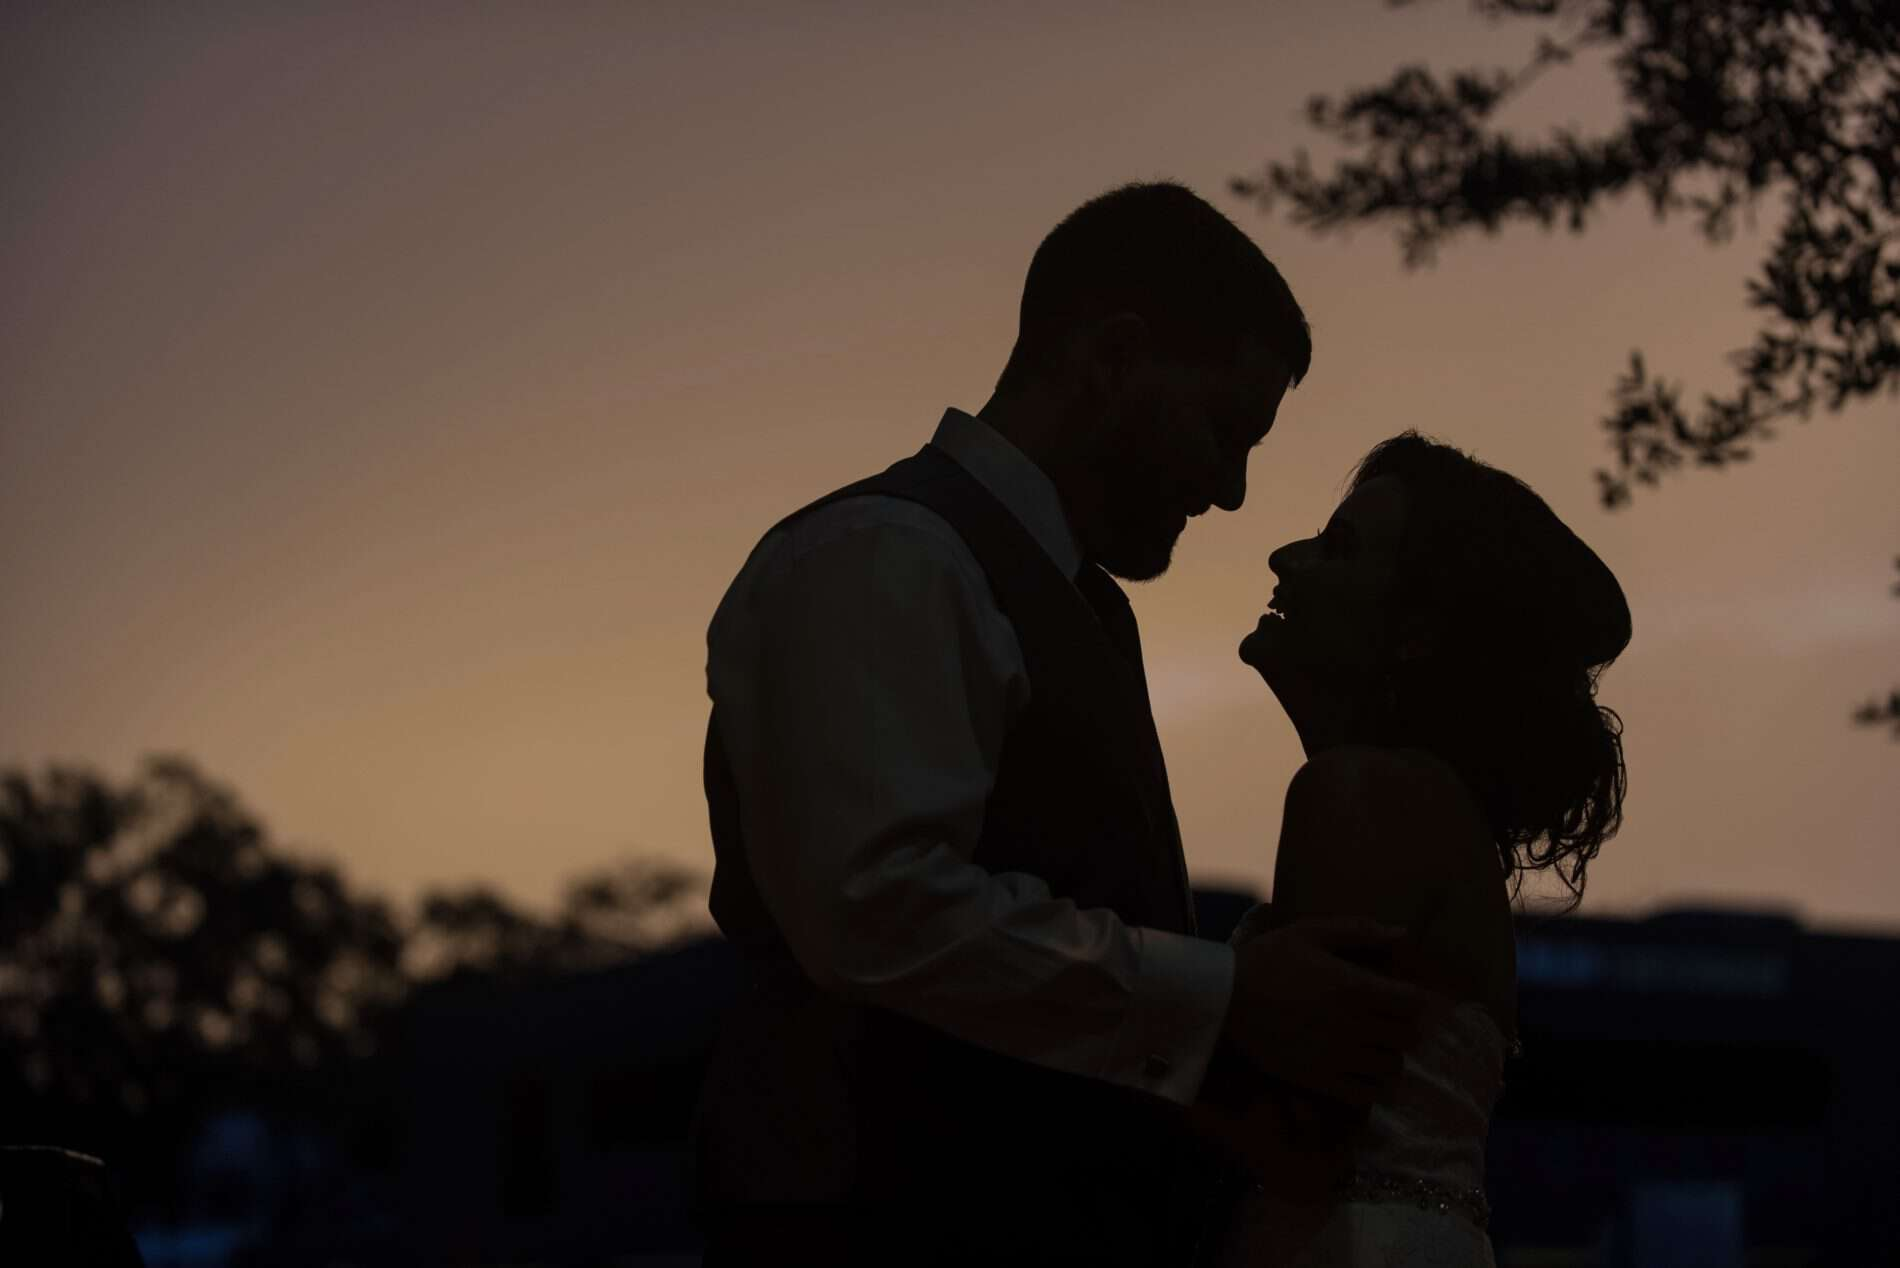 Sunset during a Wedding in a Rustic Rose Garden